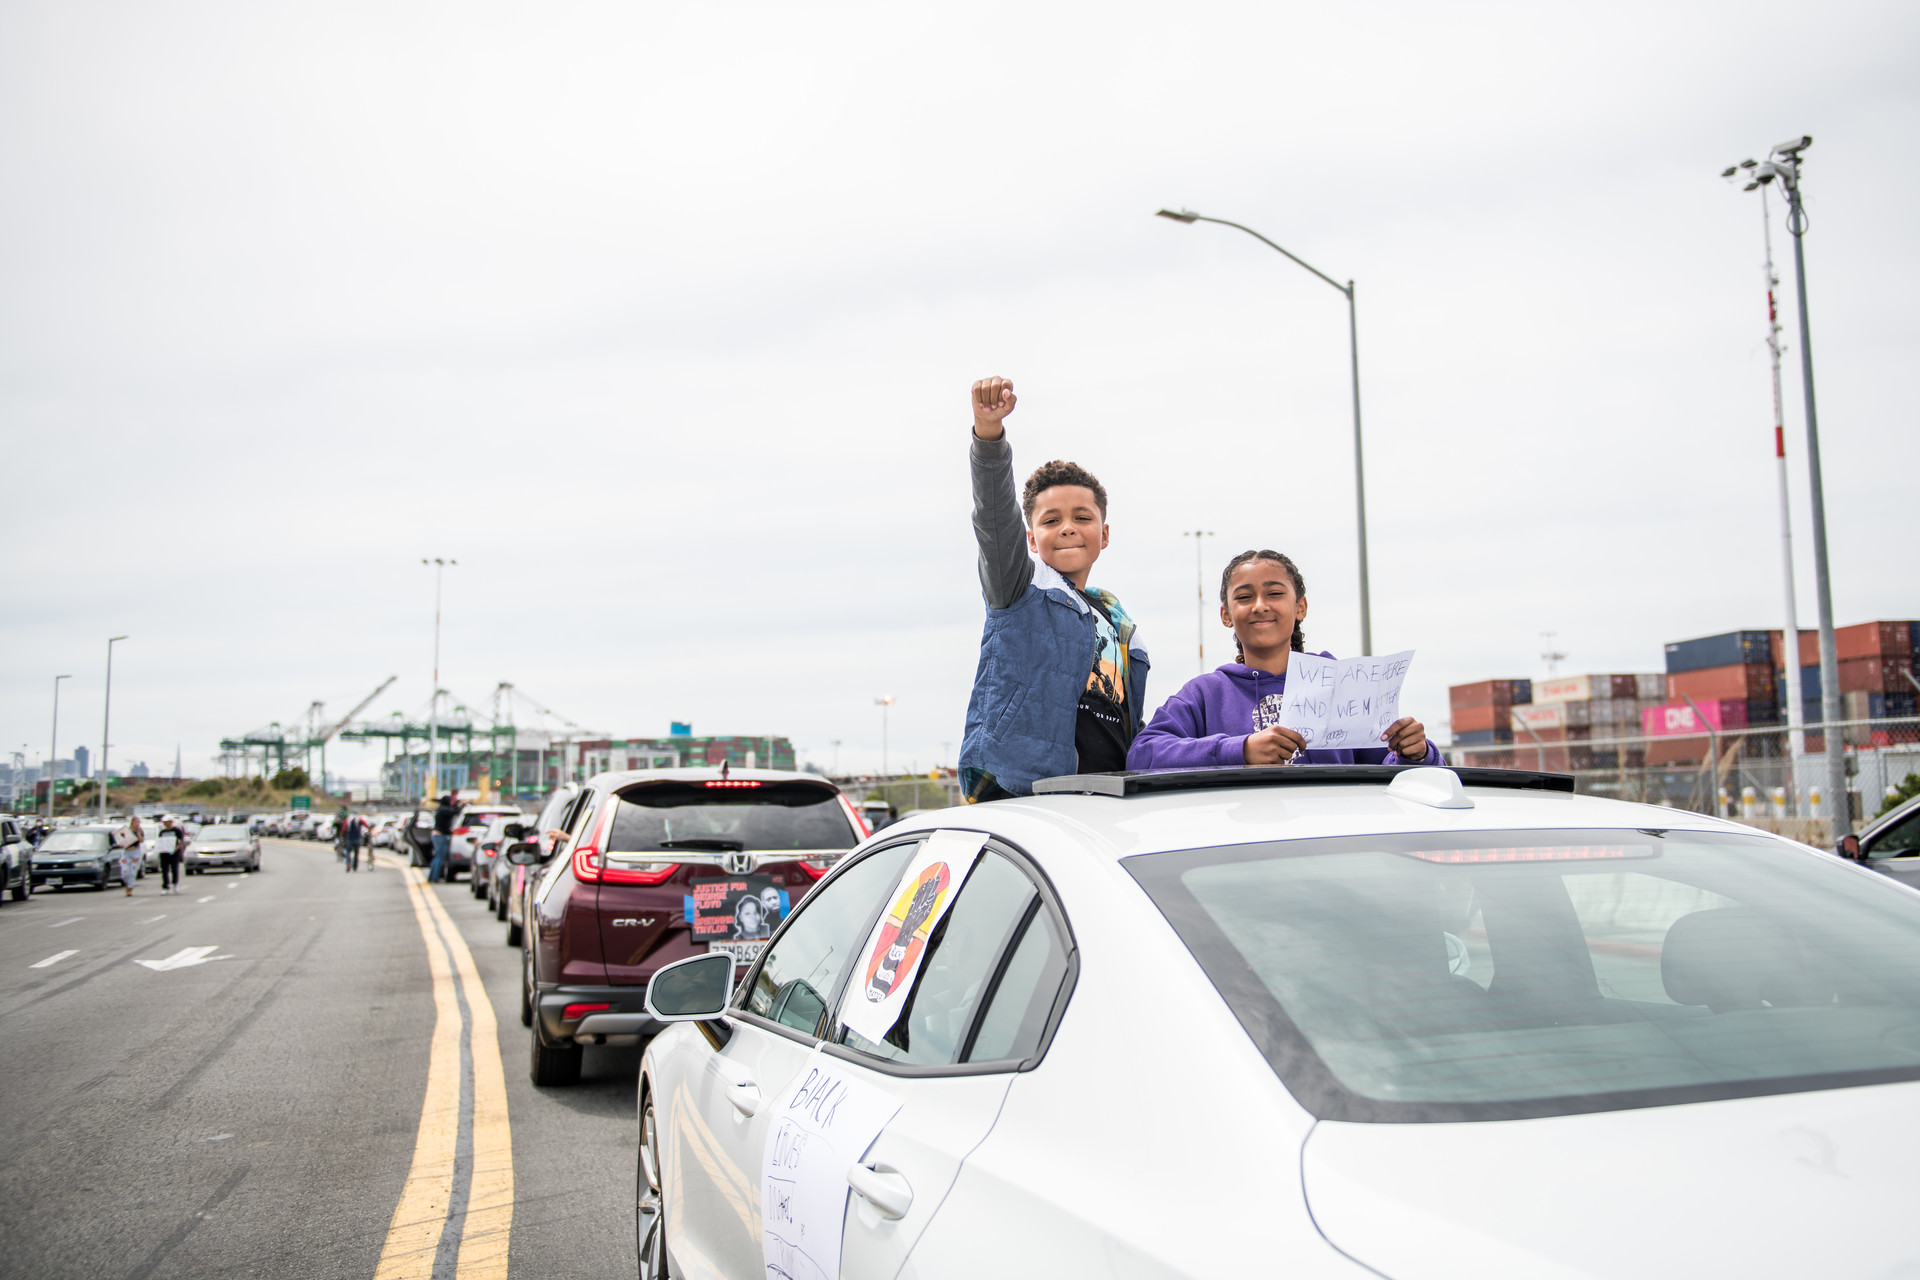 Darius (left), Noema and their family joined the caravan of vehicles that lined up at the Port of Oakland before driving to Oakland and circling Lake Merritt on Sunday May 31, 2020 to protest the killing of George Floyd and other Black people at the hands of the police.